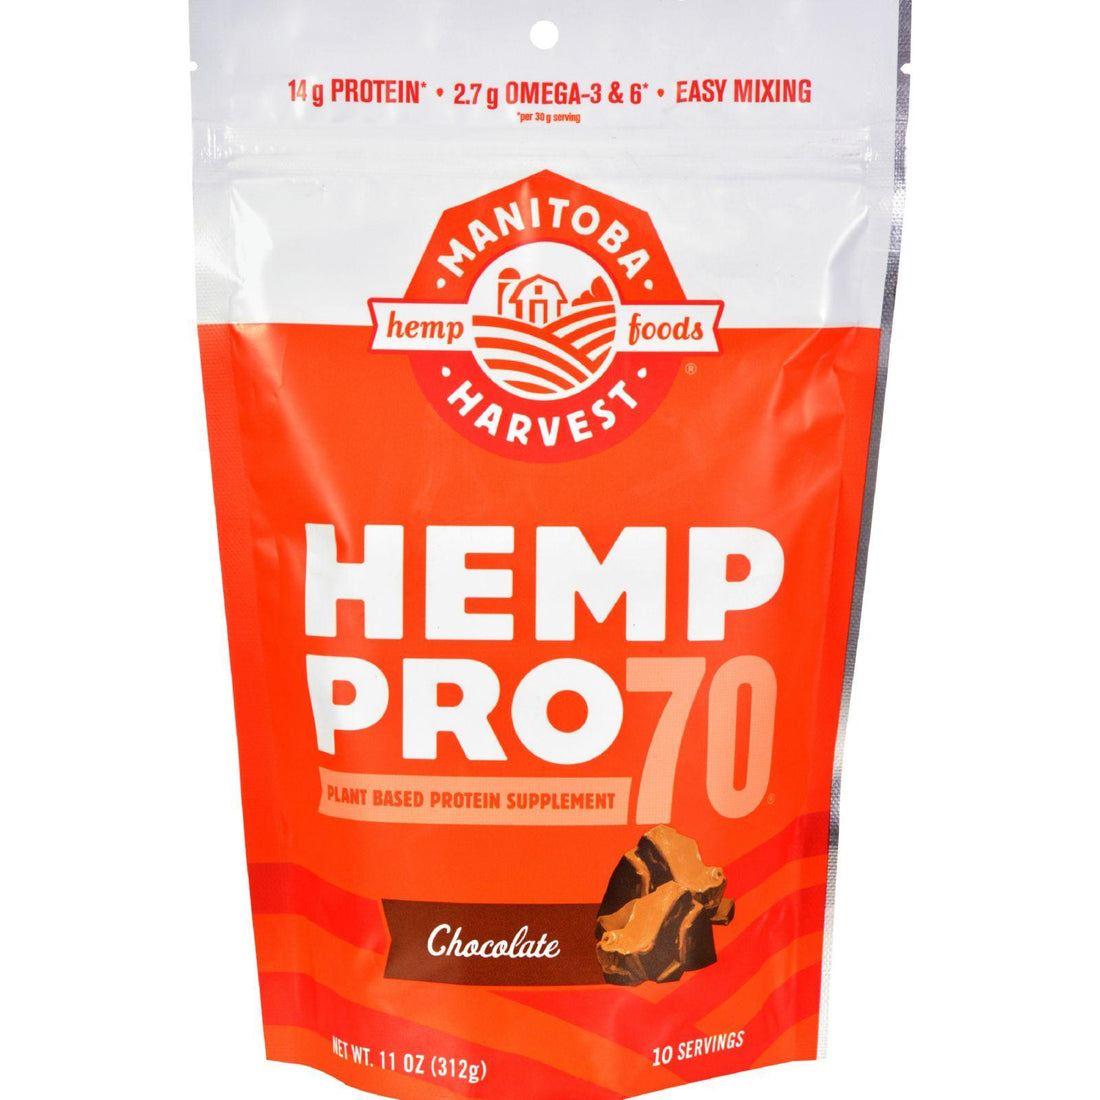 Mother Mantis: Manitoba Harvest Hemp Pro 70 - Chocolate - 11 Oz Manitoba Harvest